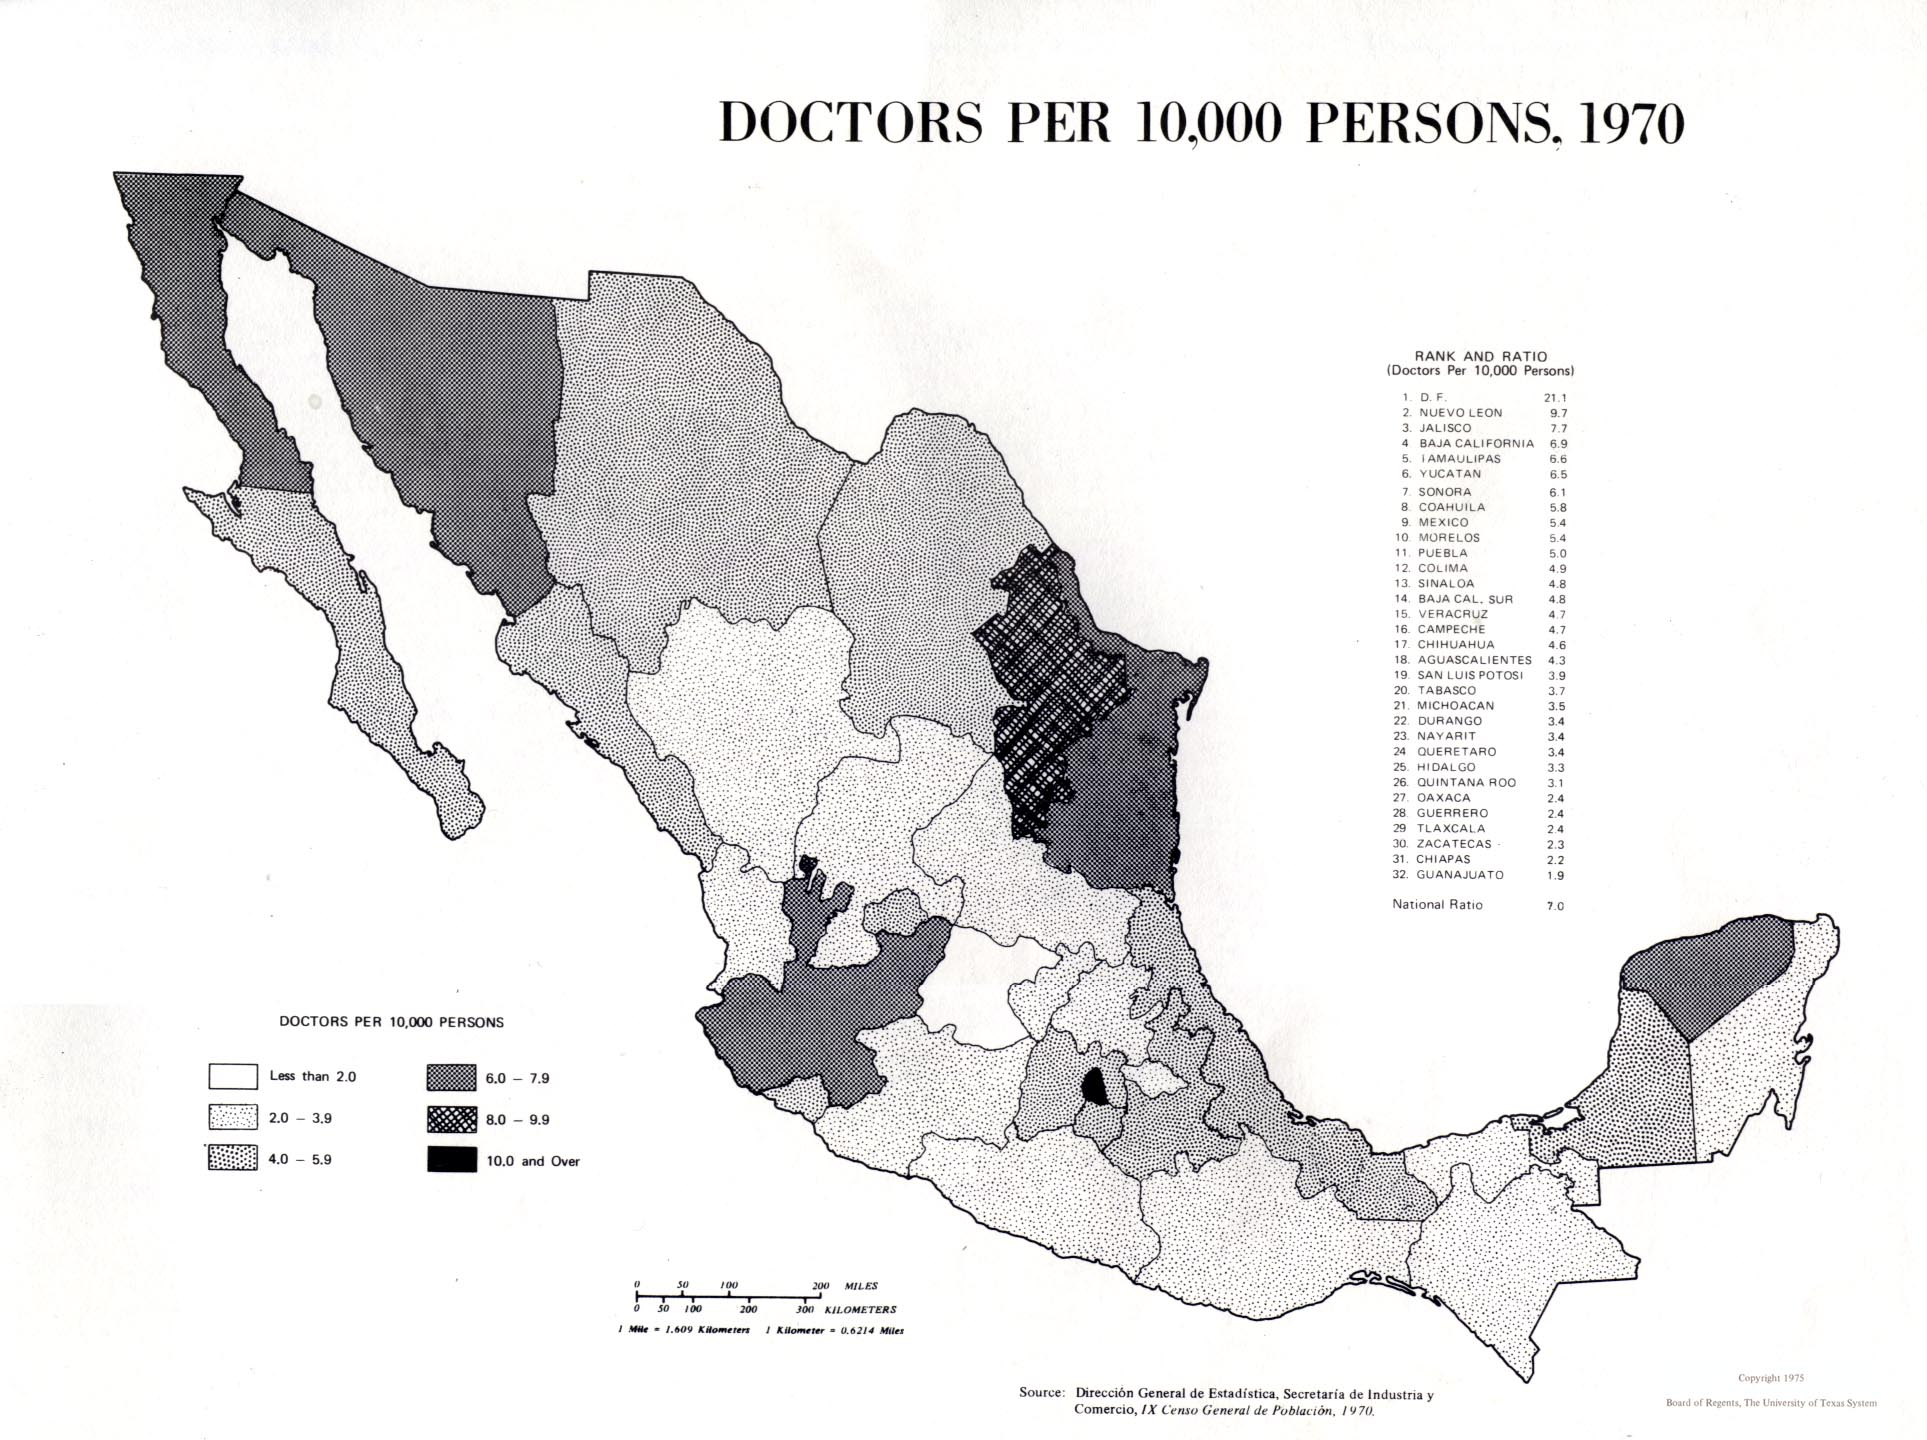 Doctors per 10,000 Persons Map, Mexico